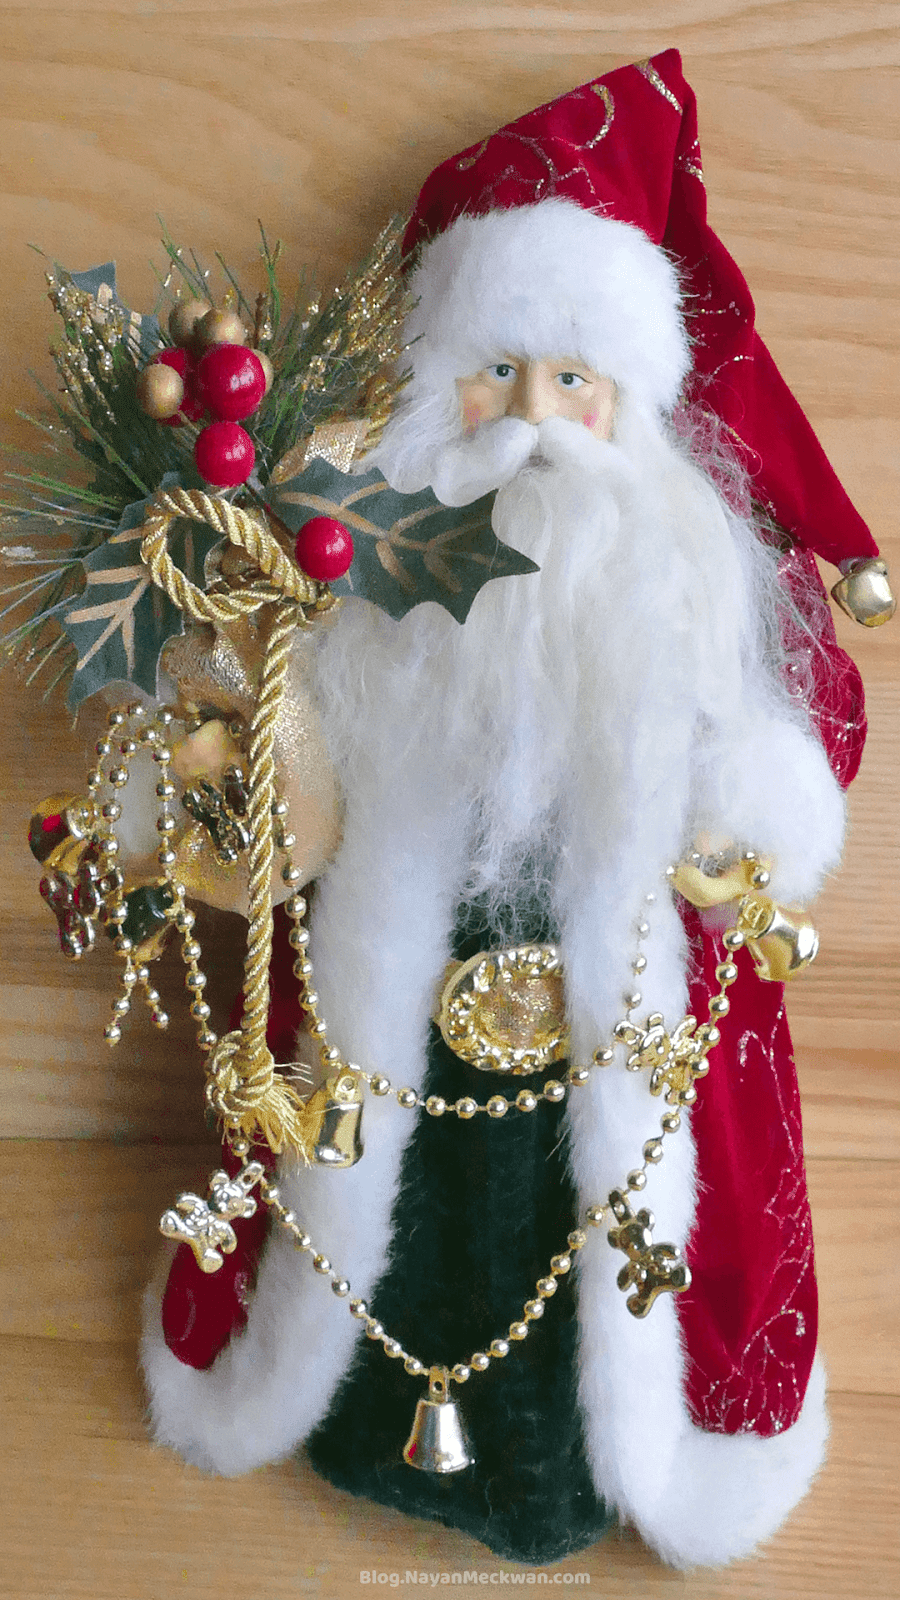 Merry Christmas Santa clause for Kids and adult gifts